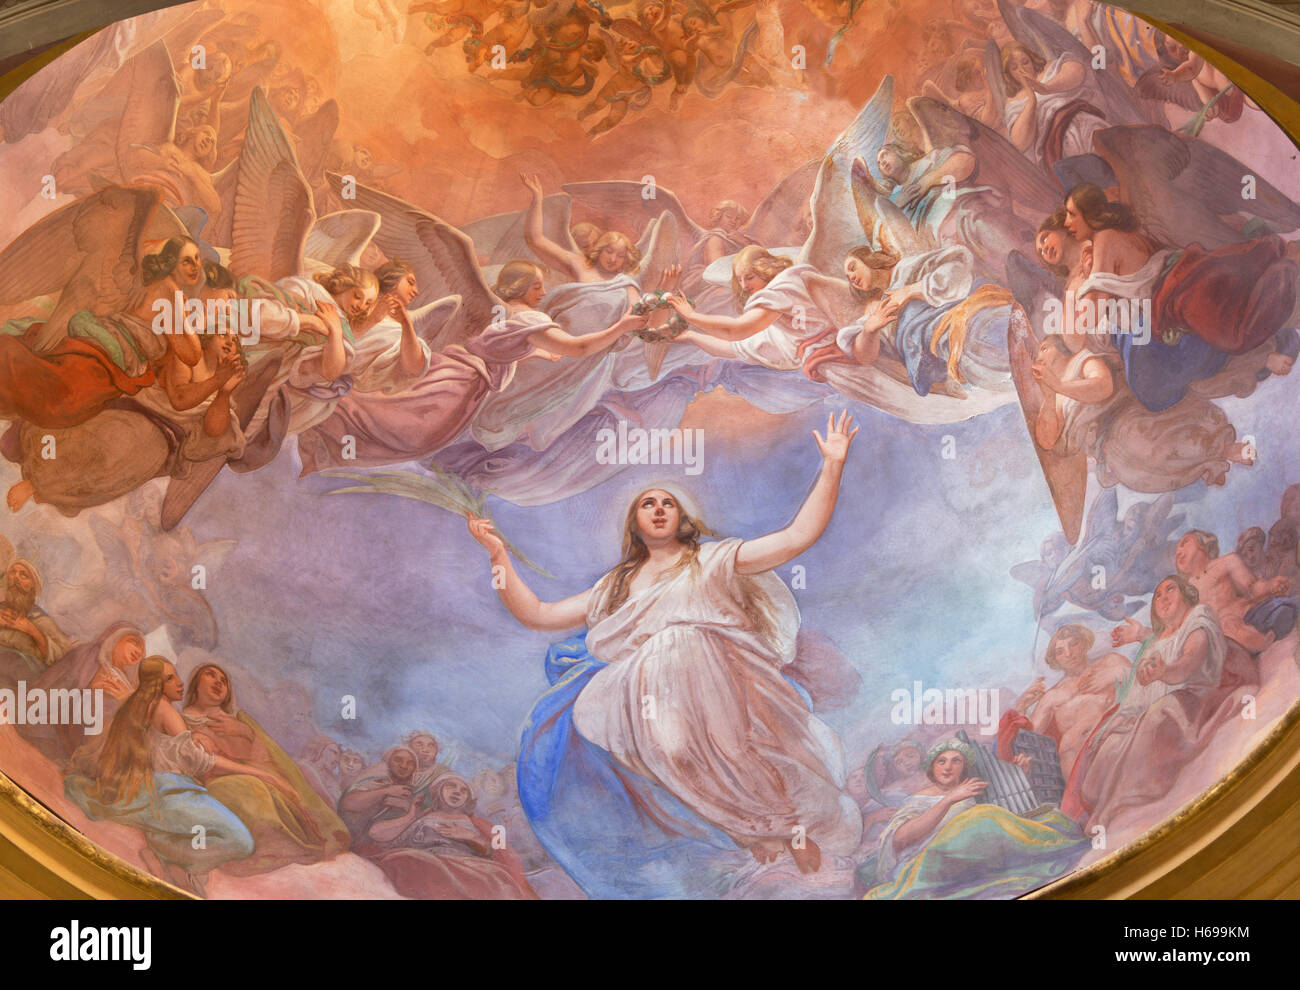 CREMONA, ITALY - MAY 24, 2016: The Apotheosis of St. Agata fresco on the cupola in church Chiesa di Santa Agata - Stock Image